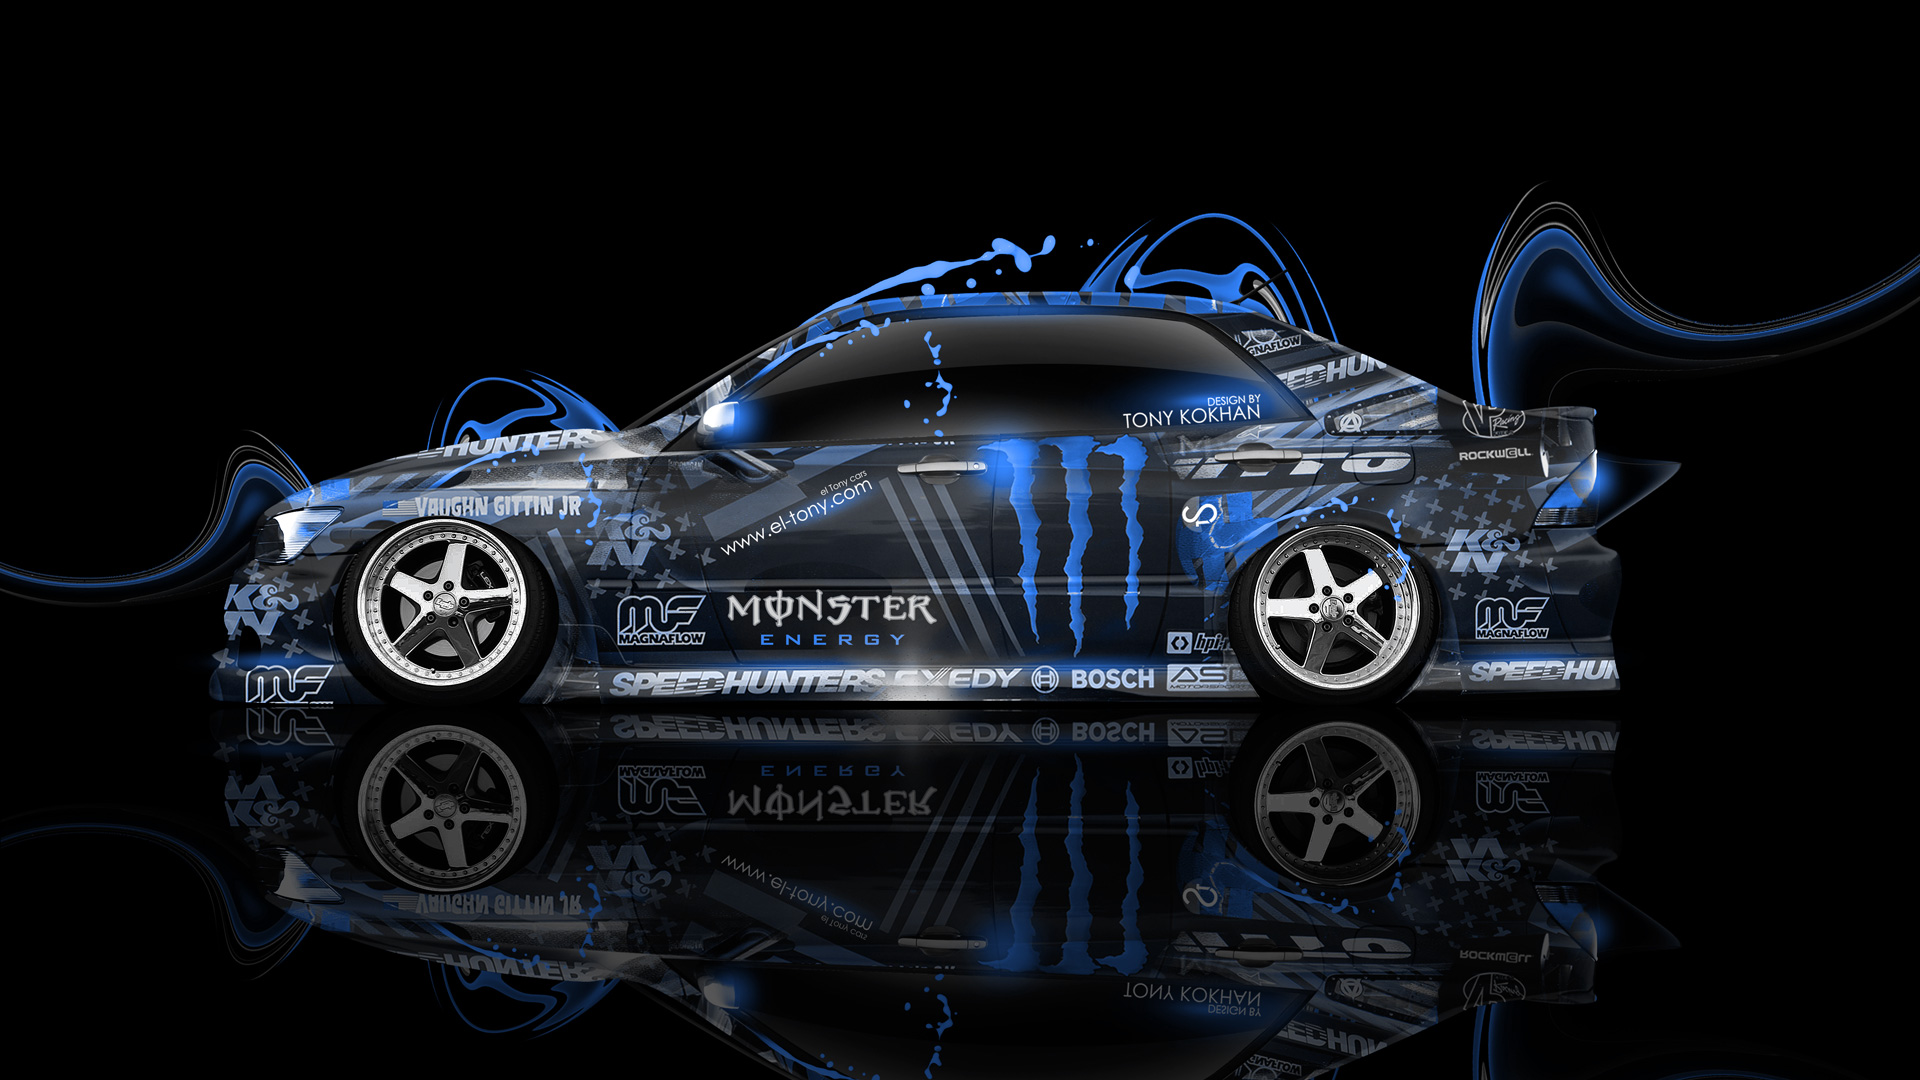 Toyota Camry JDM Tuning Side Fire Abstract Car 2015 Wallpapers El .